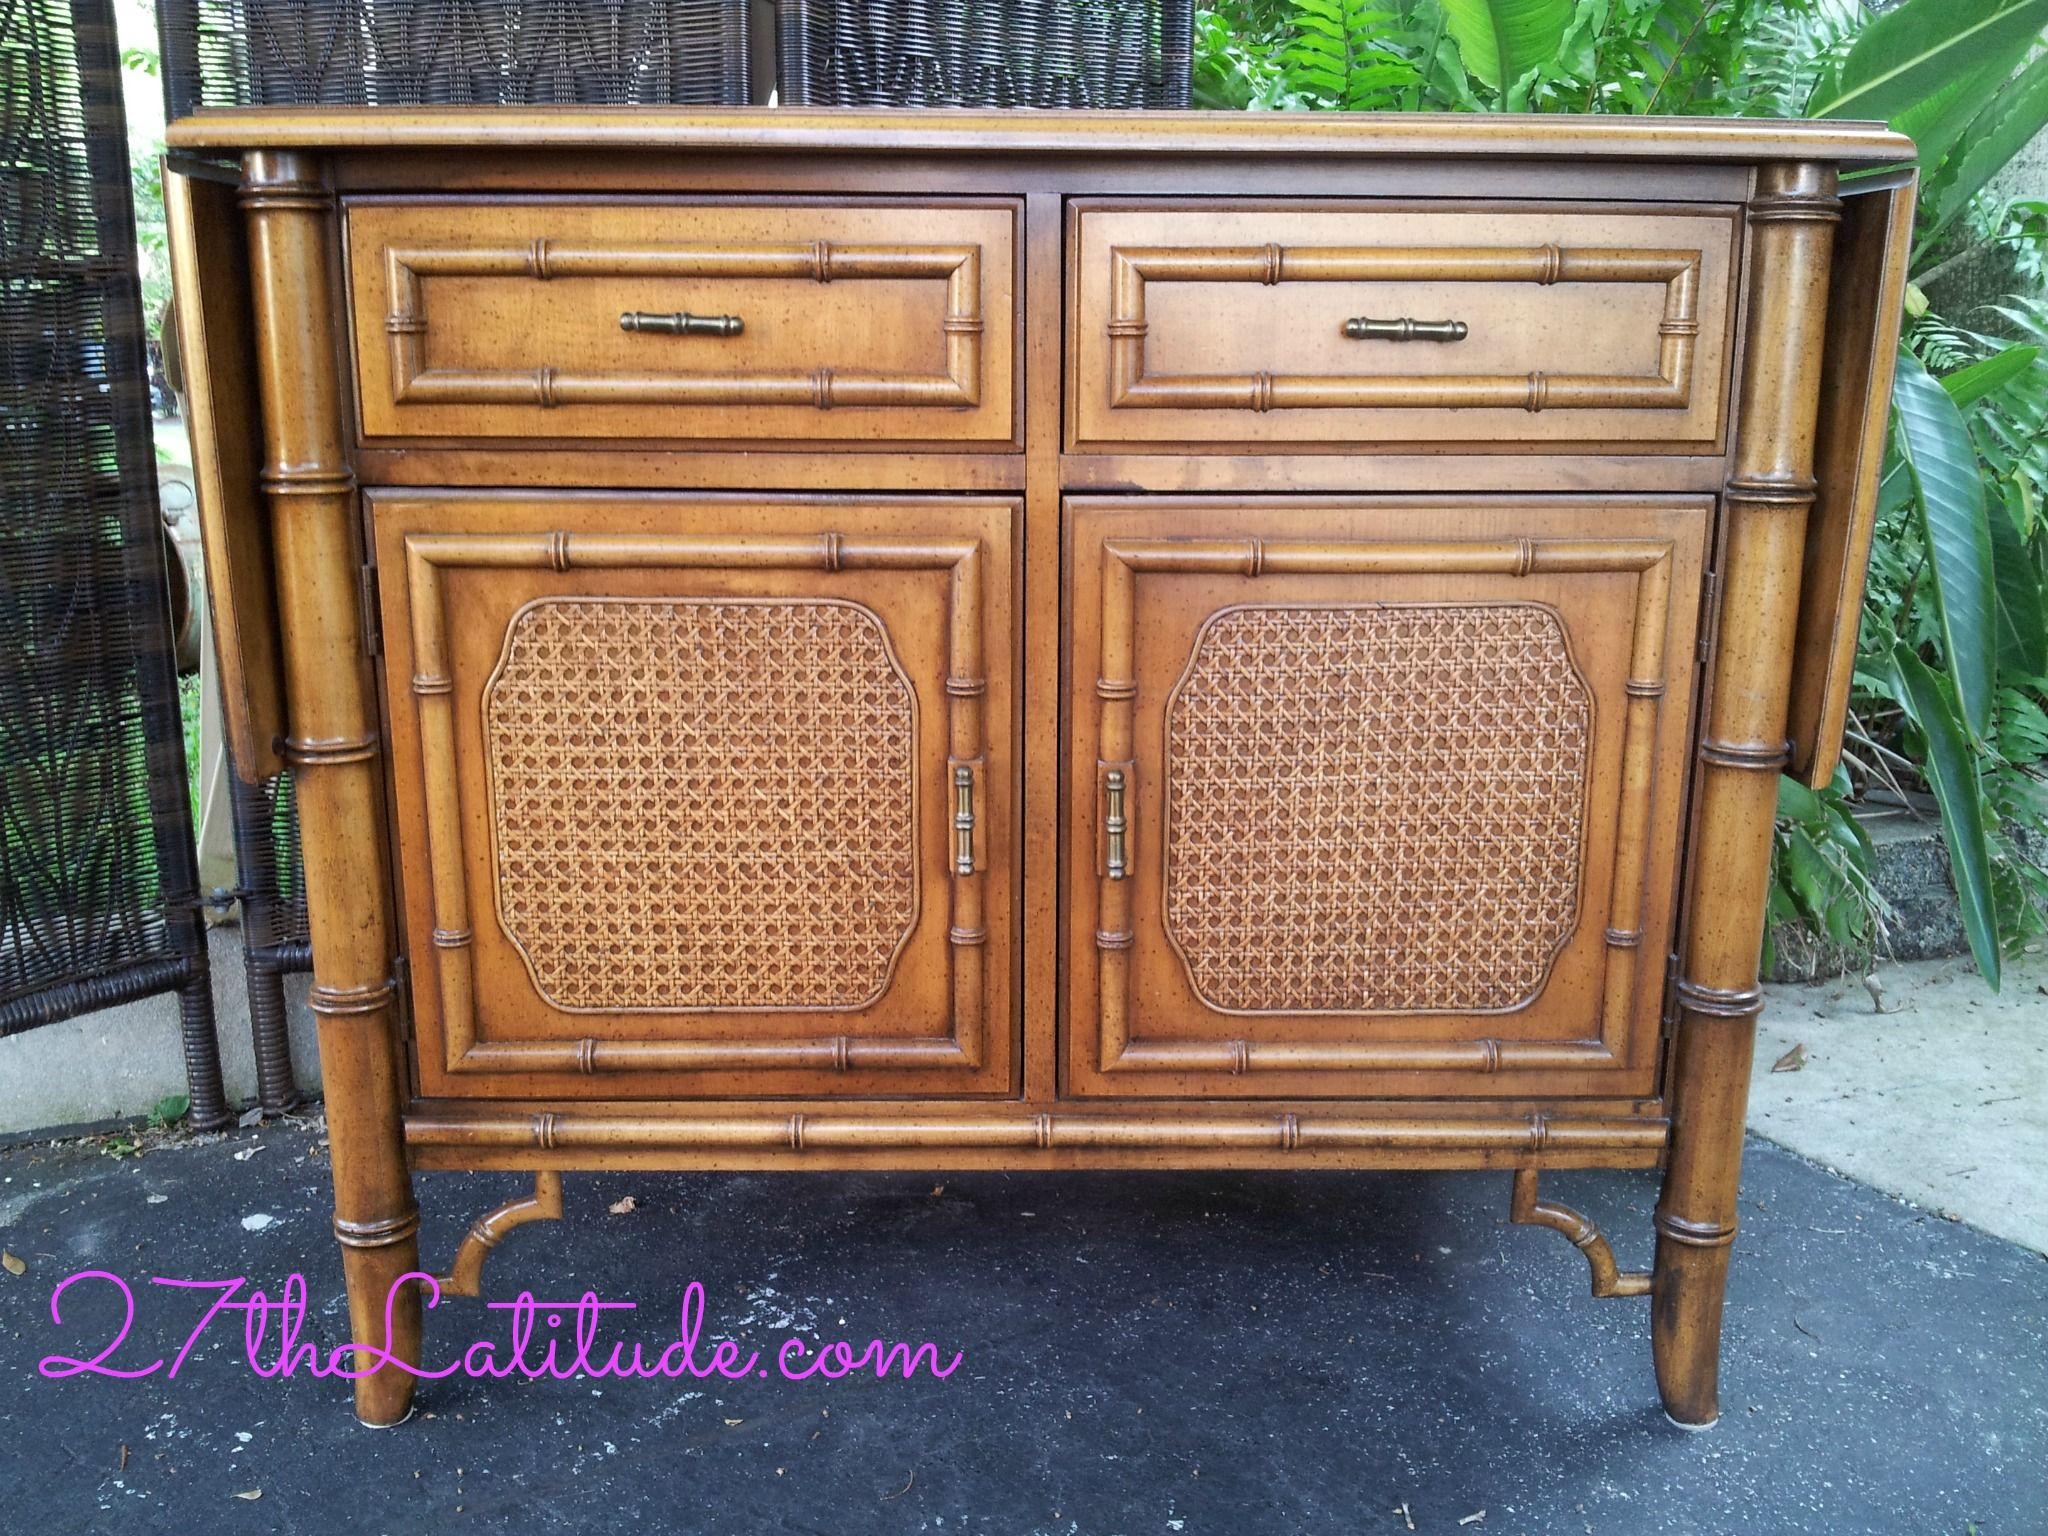 faux bamboo furniture #1 - Dixie Furniture Co. Tahiti Collection. vintage faux bamboo sideboard/buffet  with drop side leaves.